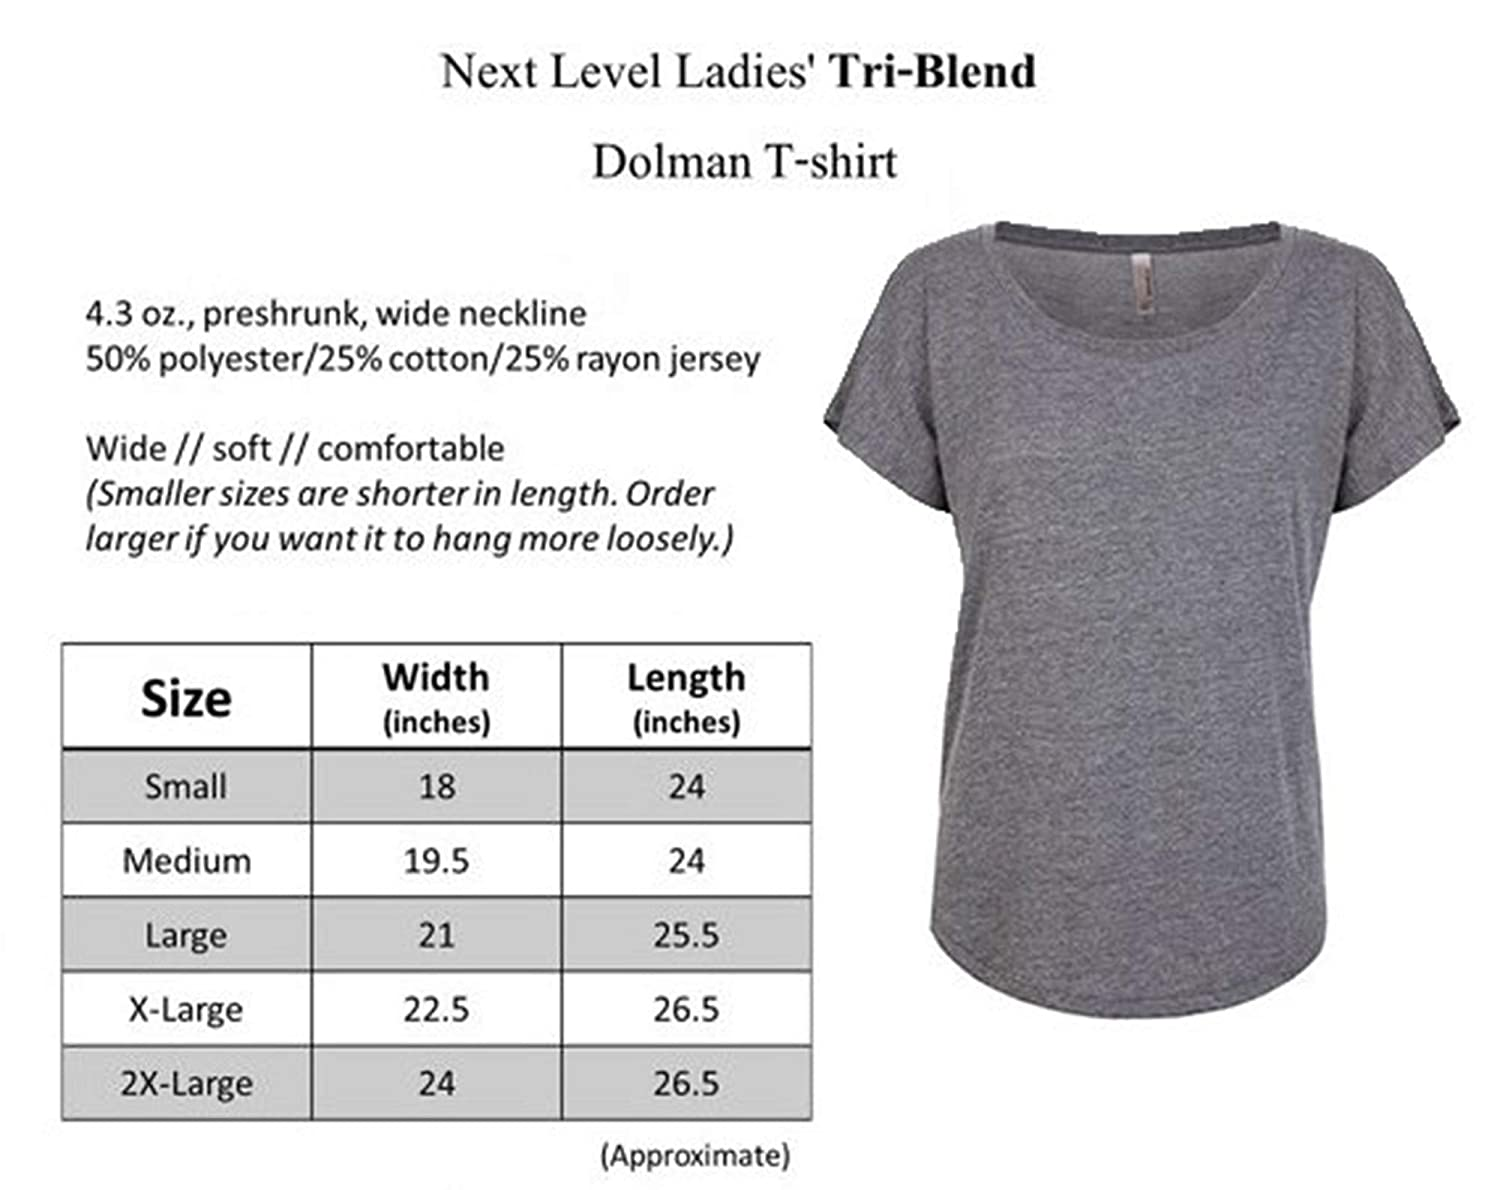 06a28a898 Let That Shiitake Go, featured in Navy Blue. These tri-blend Dolman sytle T- Shirts are perhaps the softest tops you've ever felt. Sizes: XS, S, M, L,  XL.